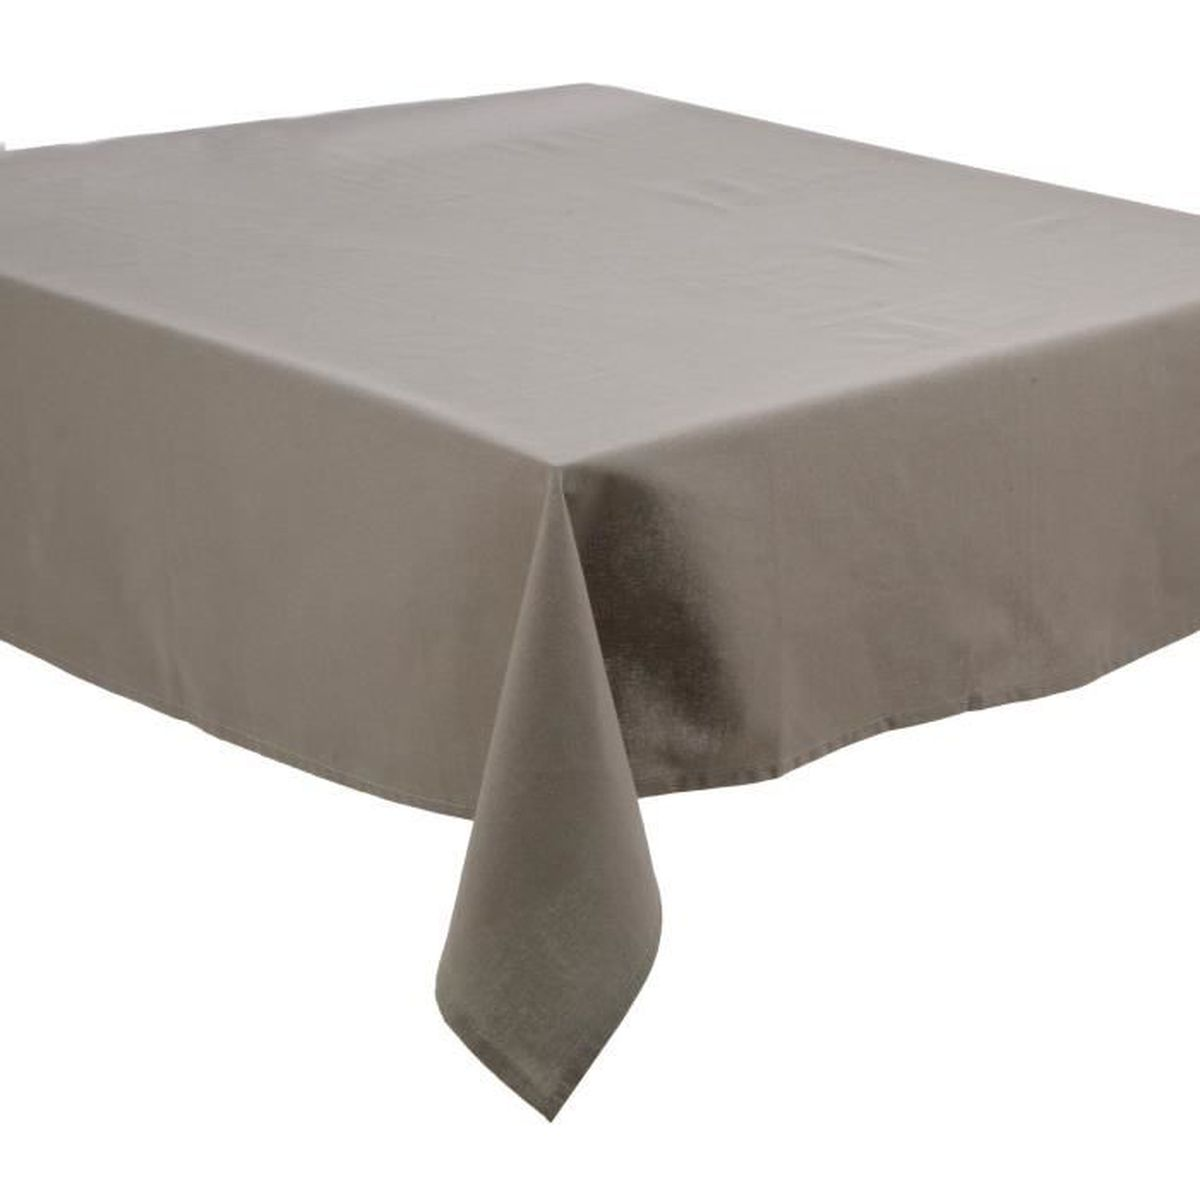 nappe anti taches coton 150x150 cm gris clair achat vente nappe de table cdiscount. Black Bedroom Furniture Sets. Home Design Ideas